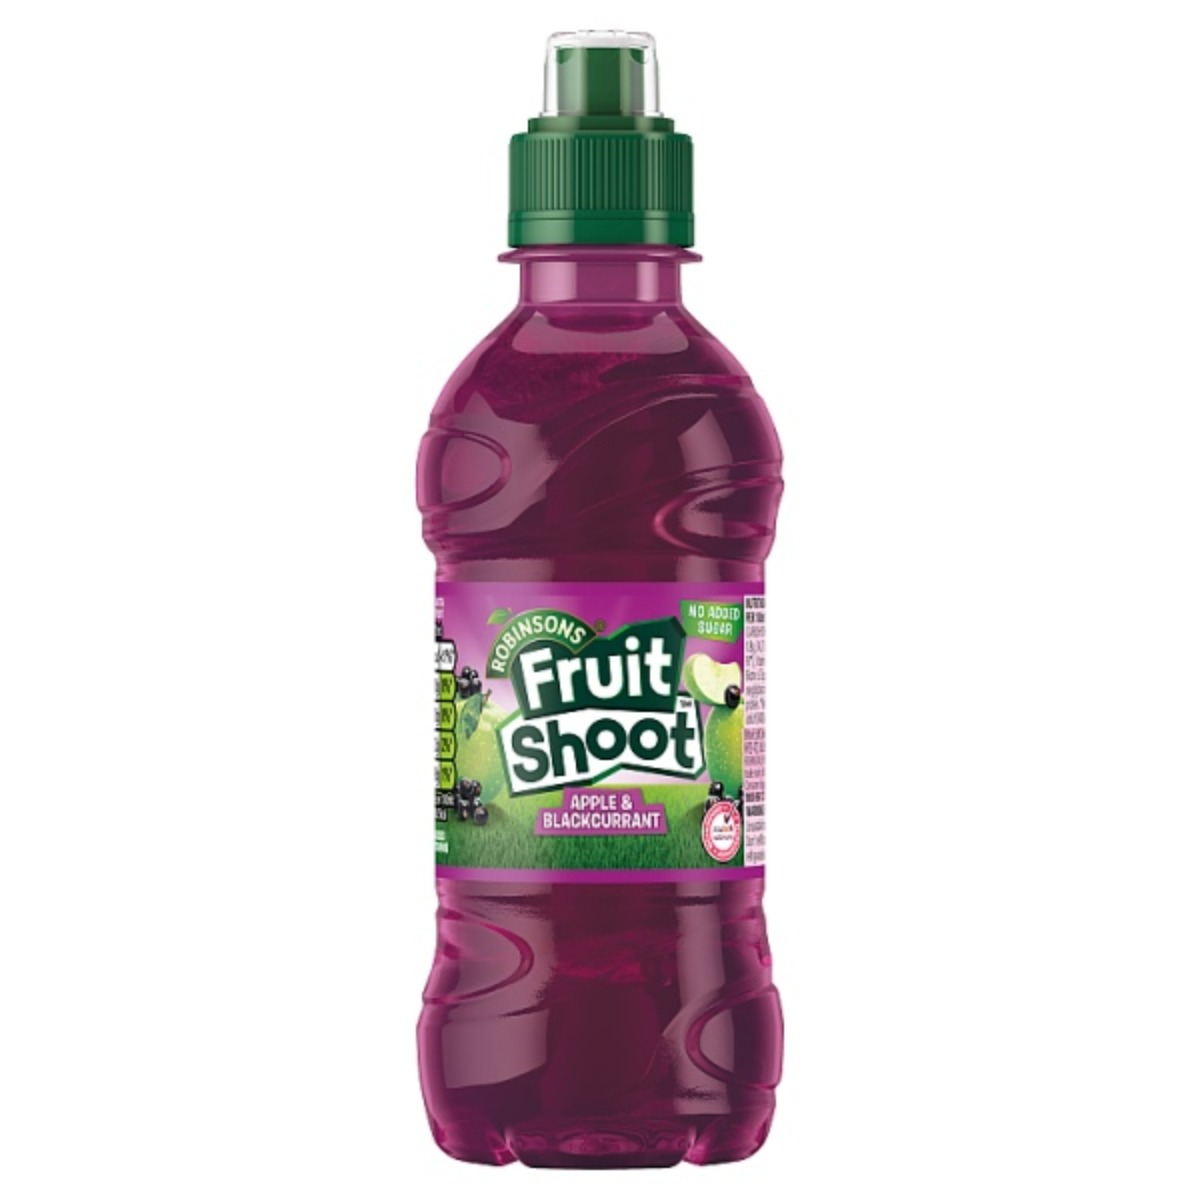 Fruit Shoot Apple & Blackcurrant 12x275ml